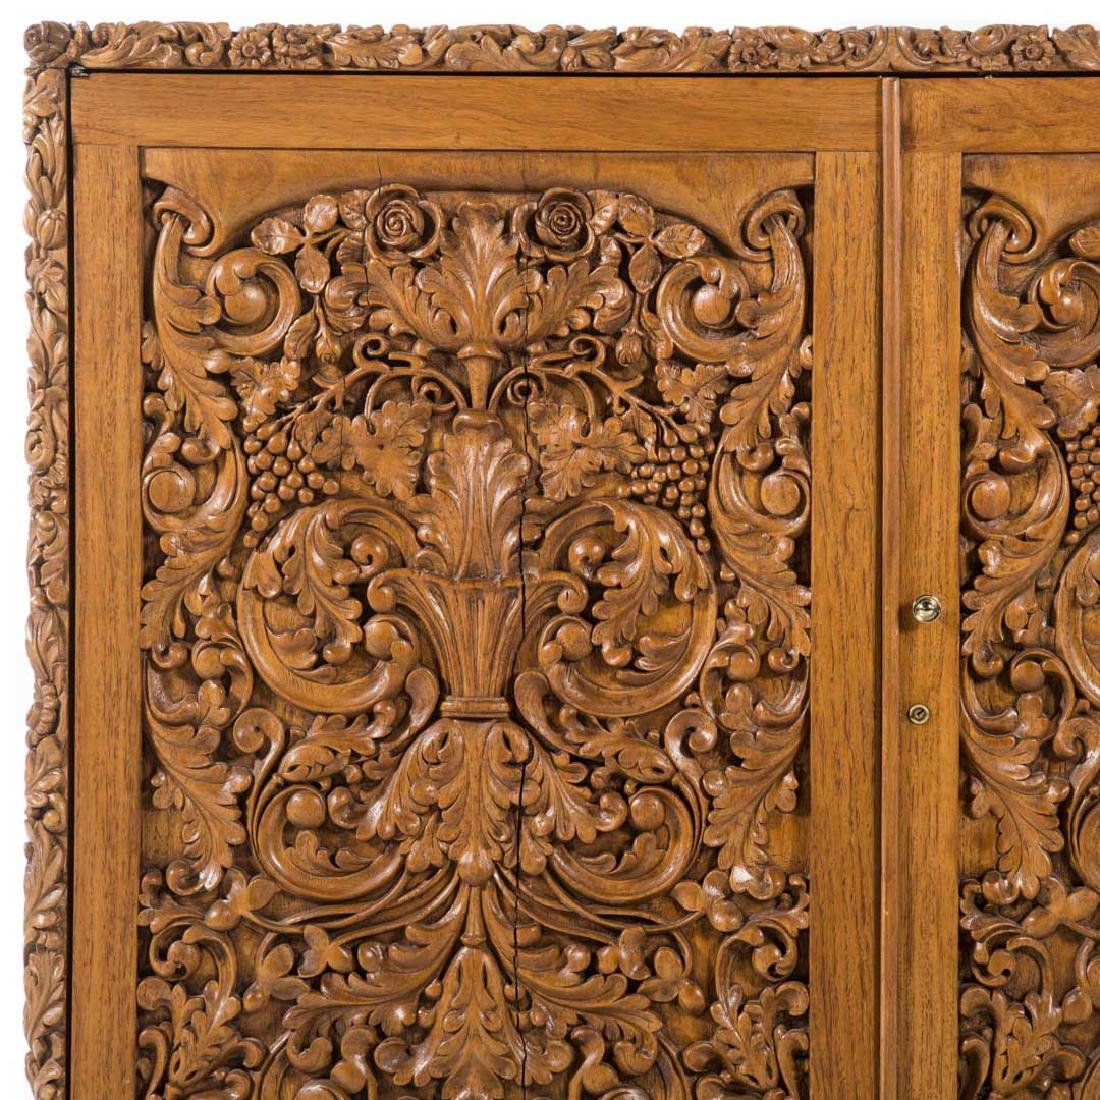 Chinese carved teakwood desk - 2